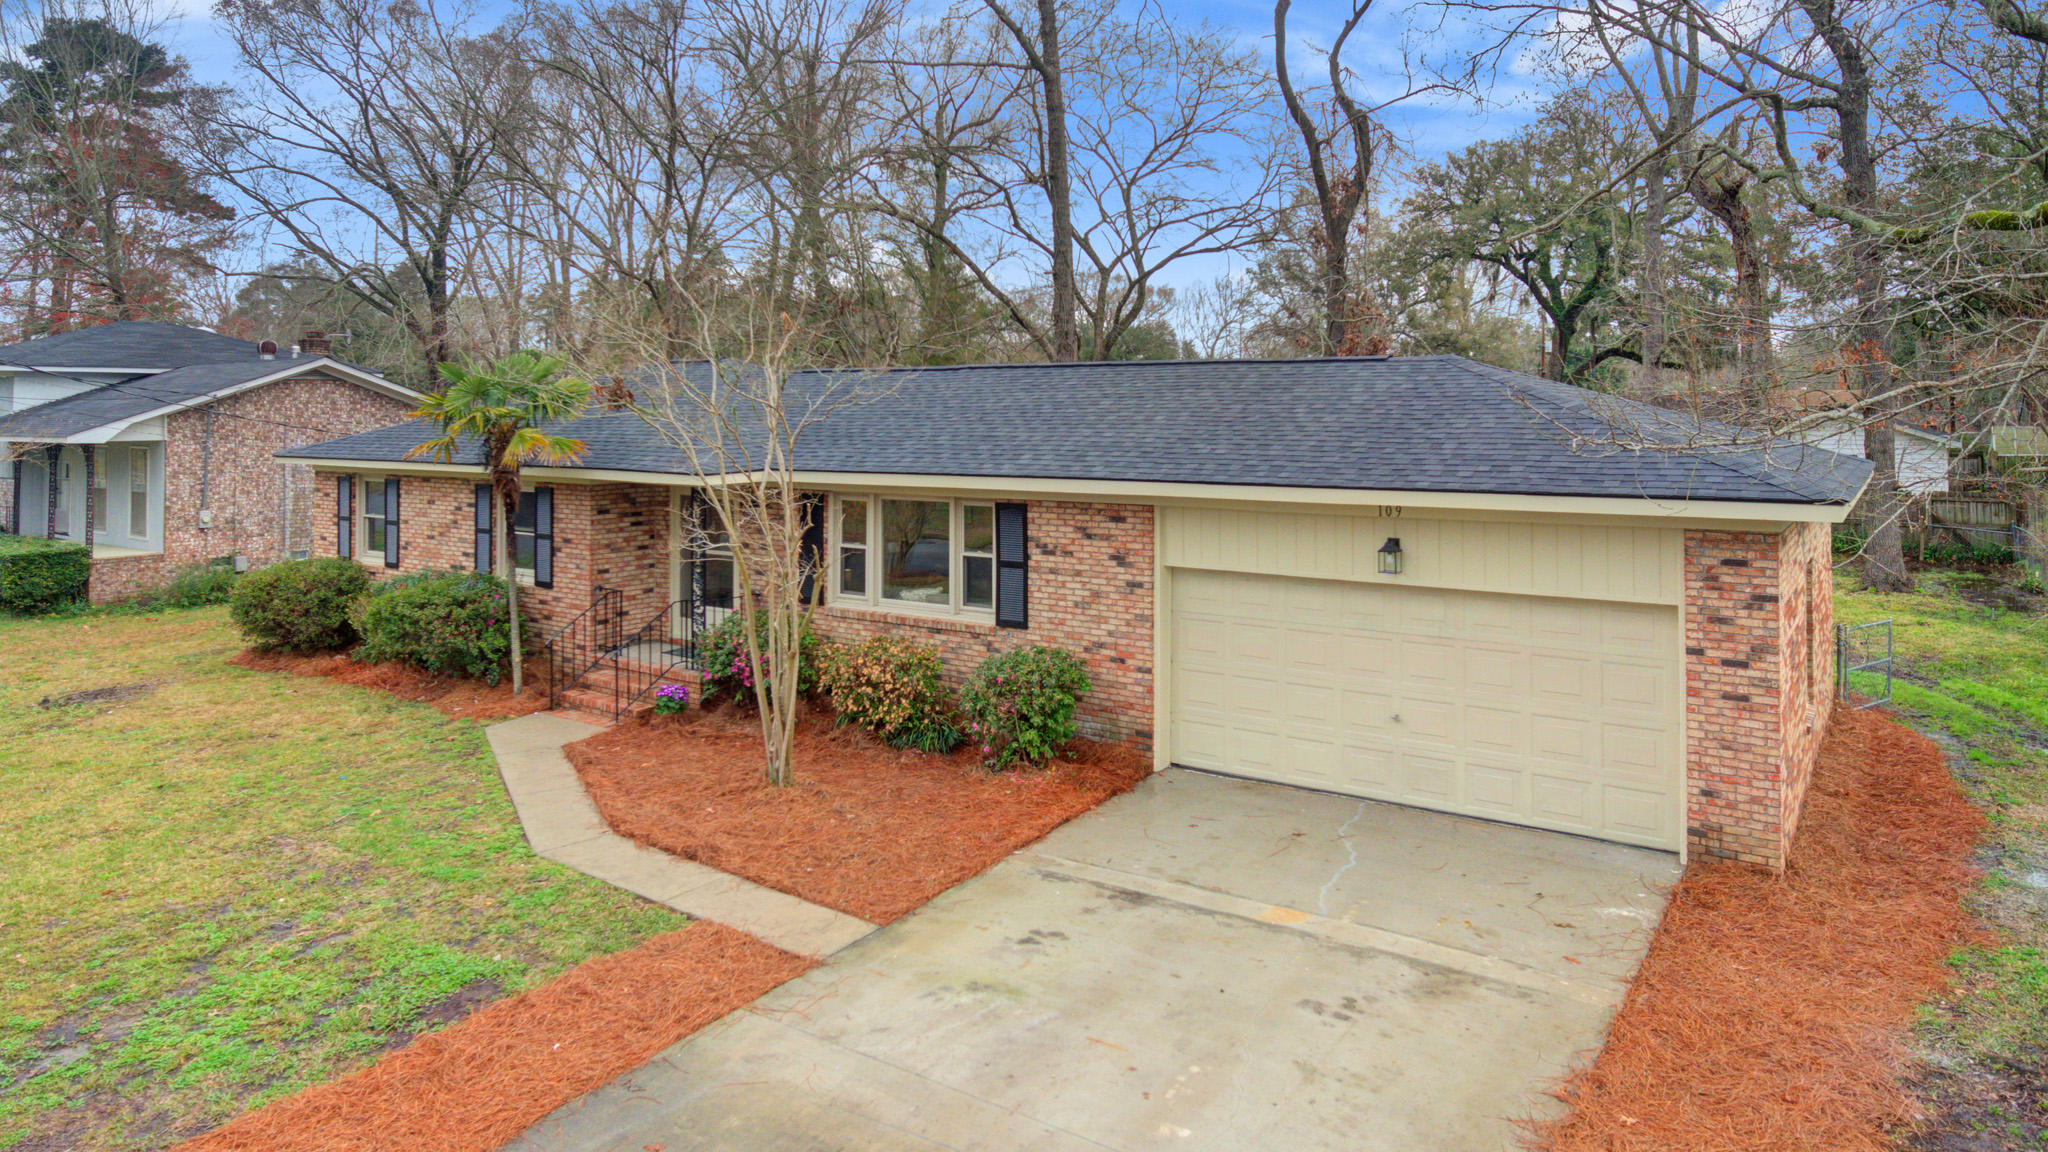 North Tranquil Acres Homes For Sale - 109 Monroe, Ladson, SC - 24